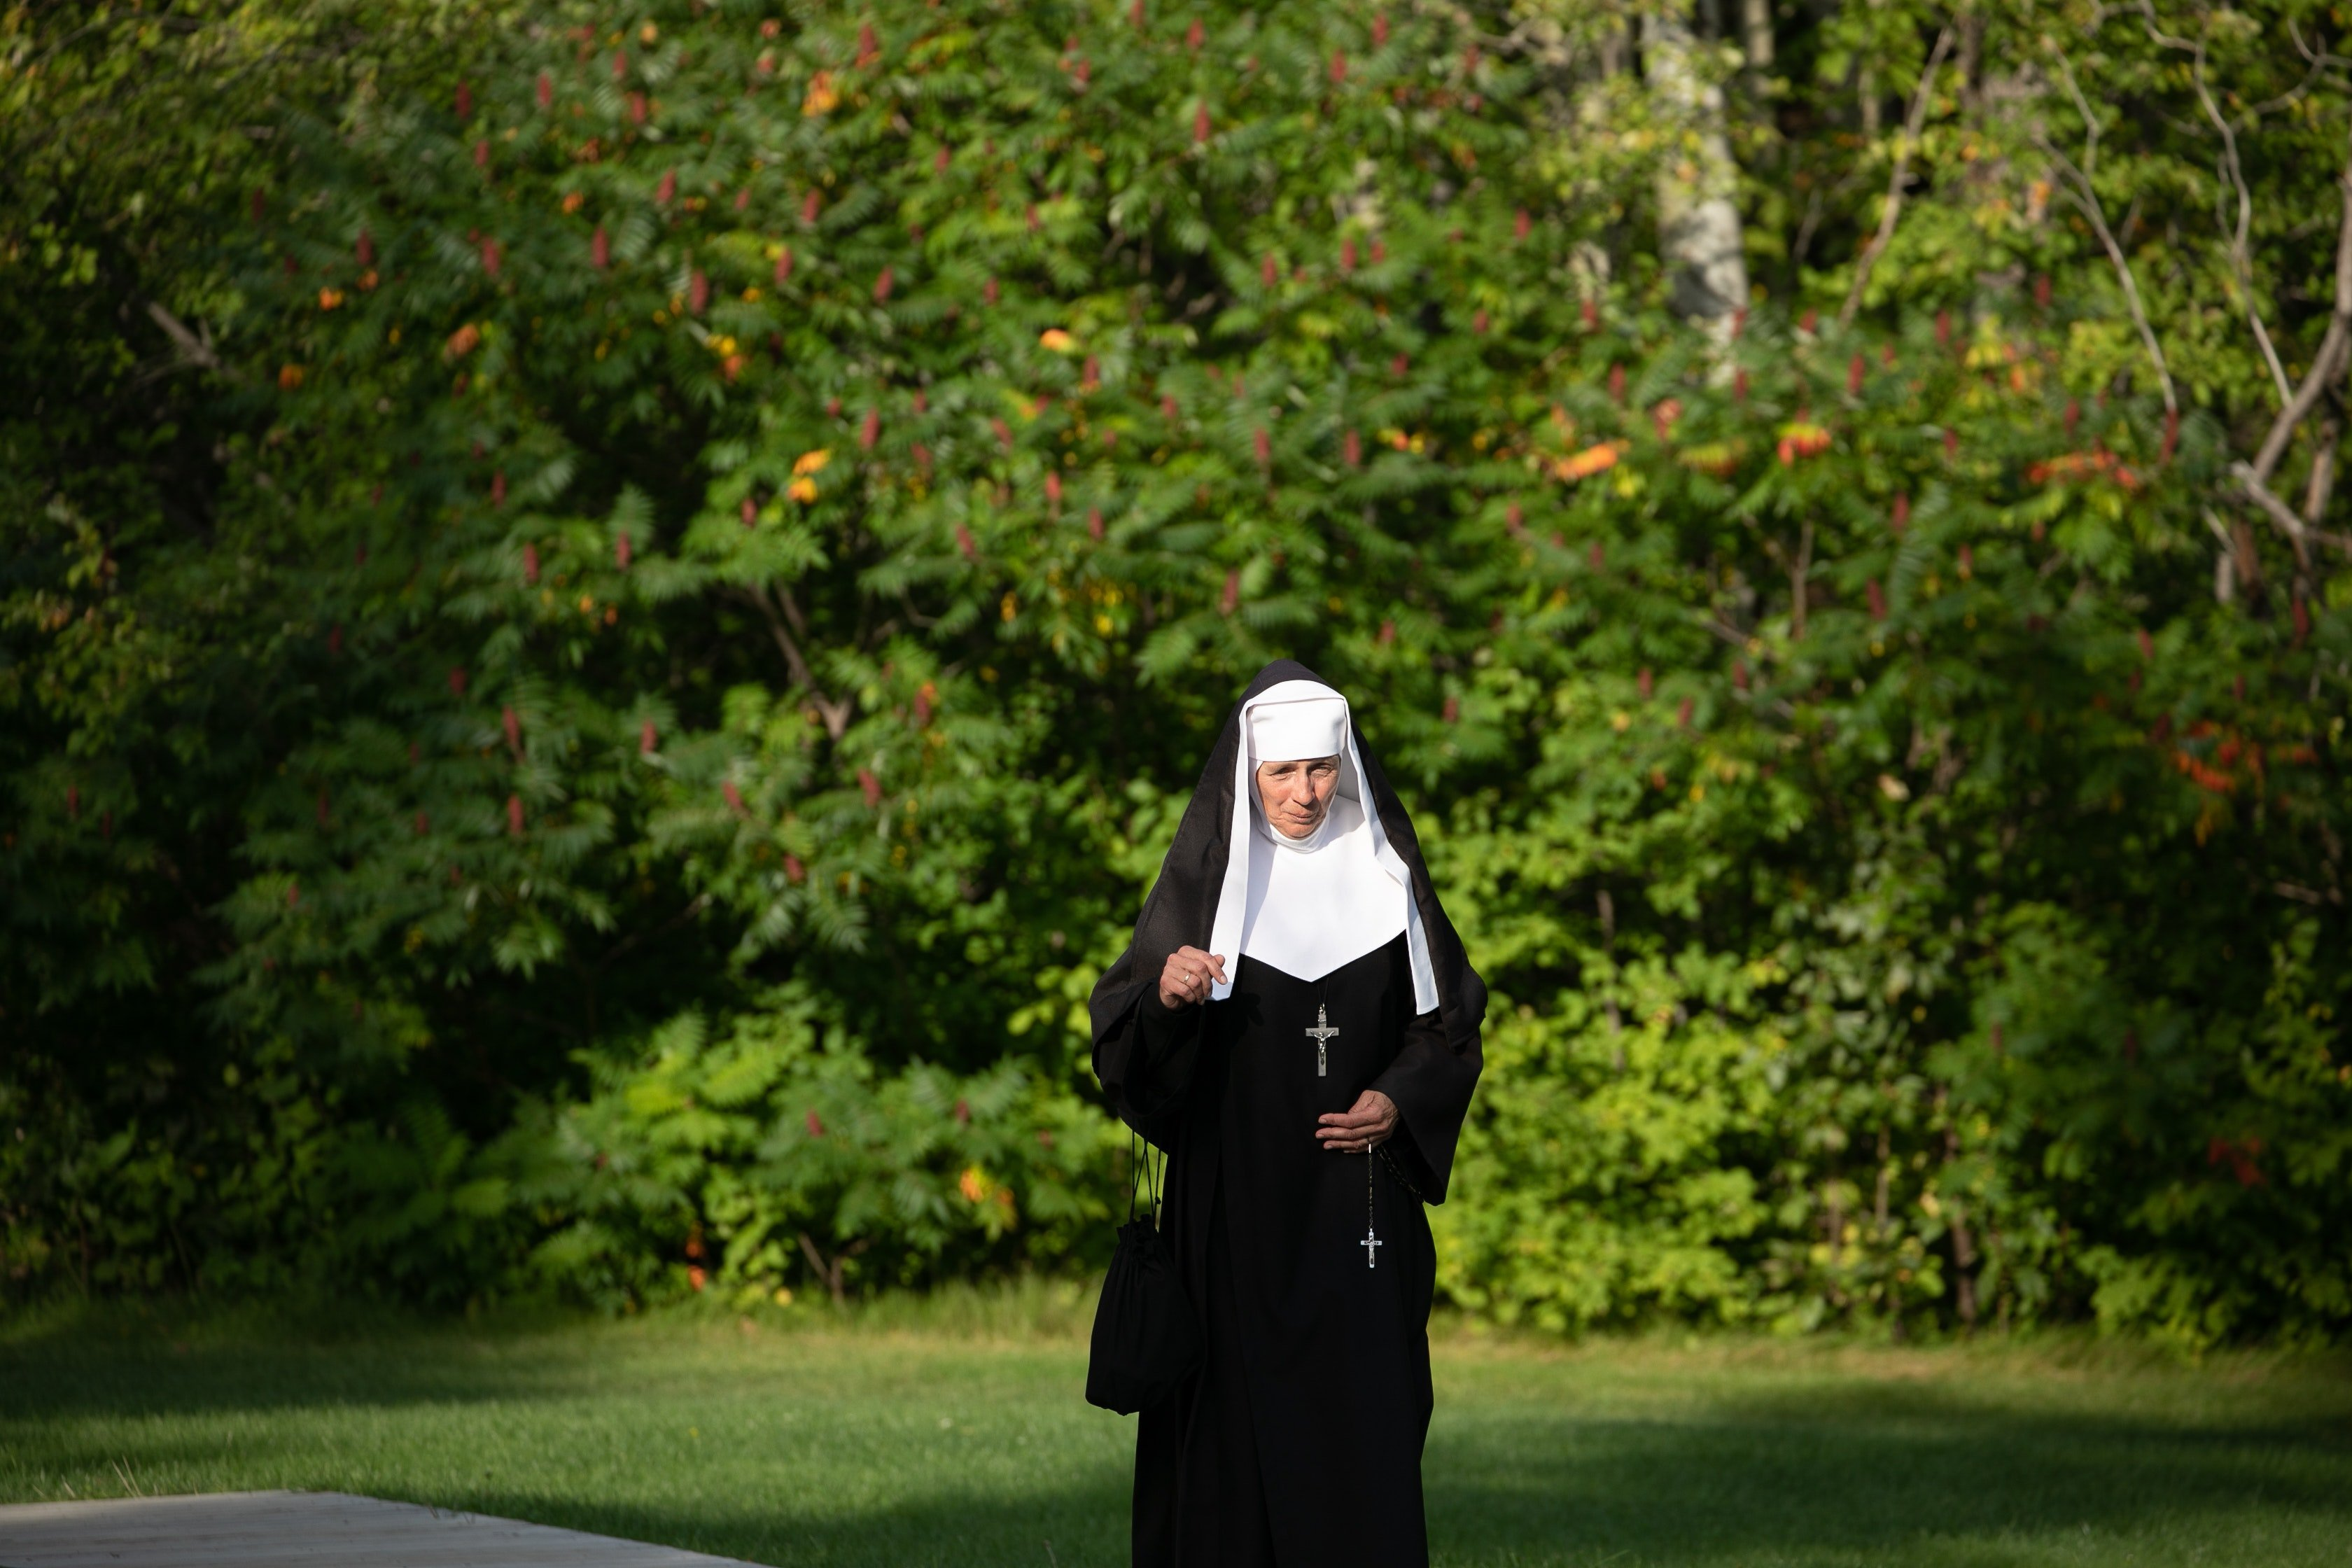 A nun holds a cross in her hand and walks down the street | Photo: Pexels/Mathieu Acker